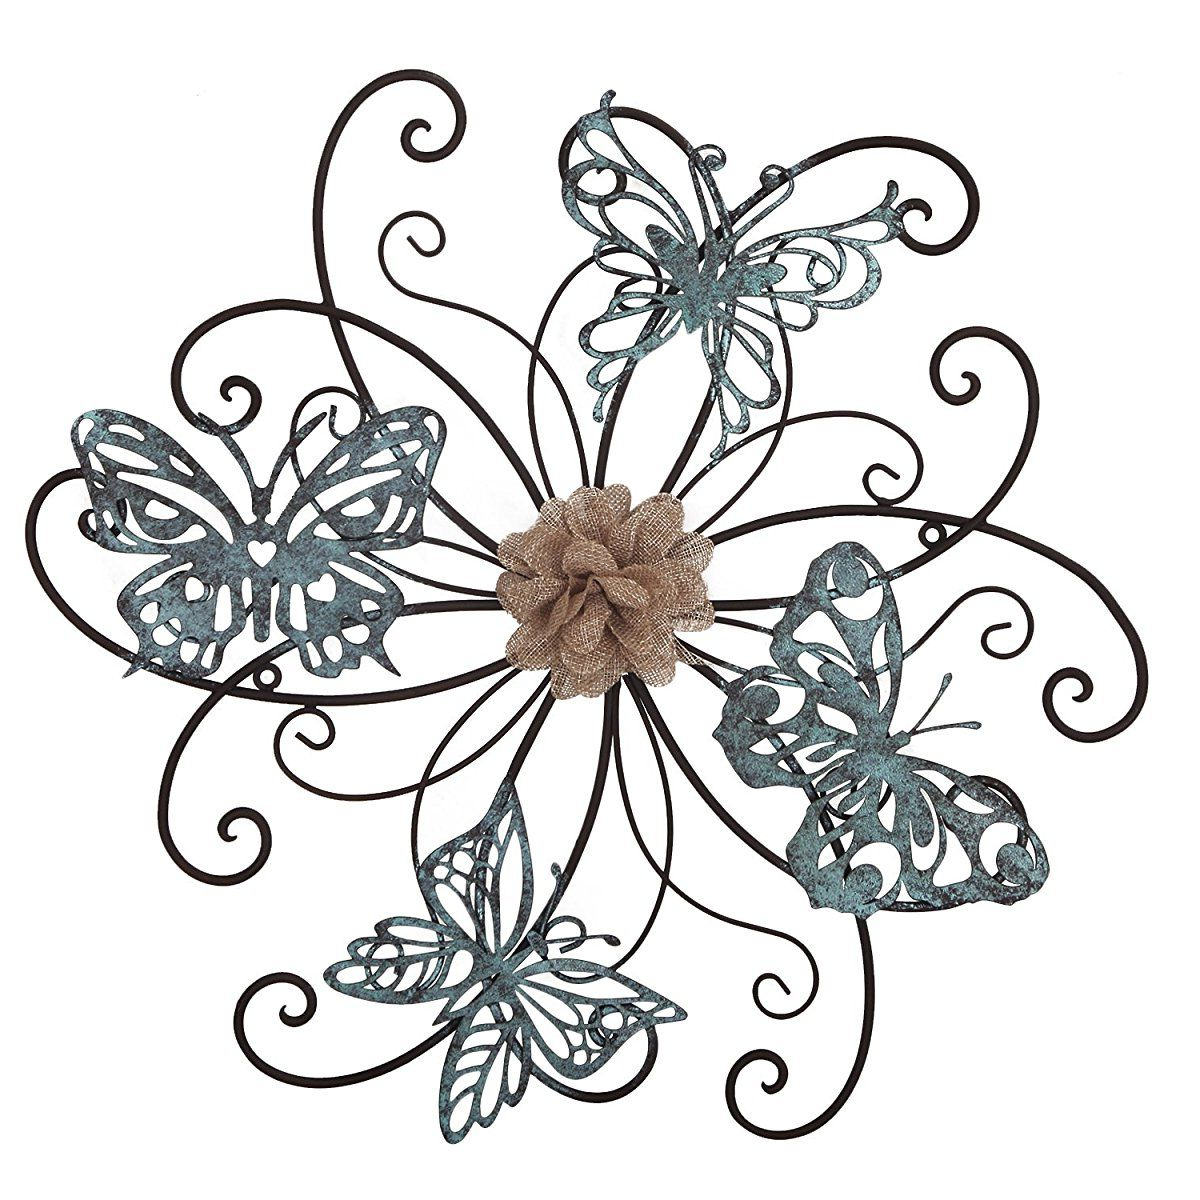 Widely Used Flower And Butterfly Urban Design Metal Wall Decor Within Homes Art Flower And Butterfly Urban Design Metal Wall Decor For (View 4 of 20)